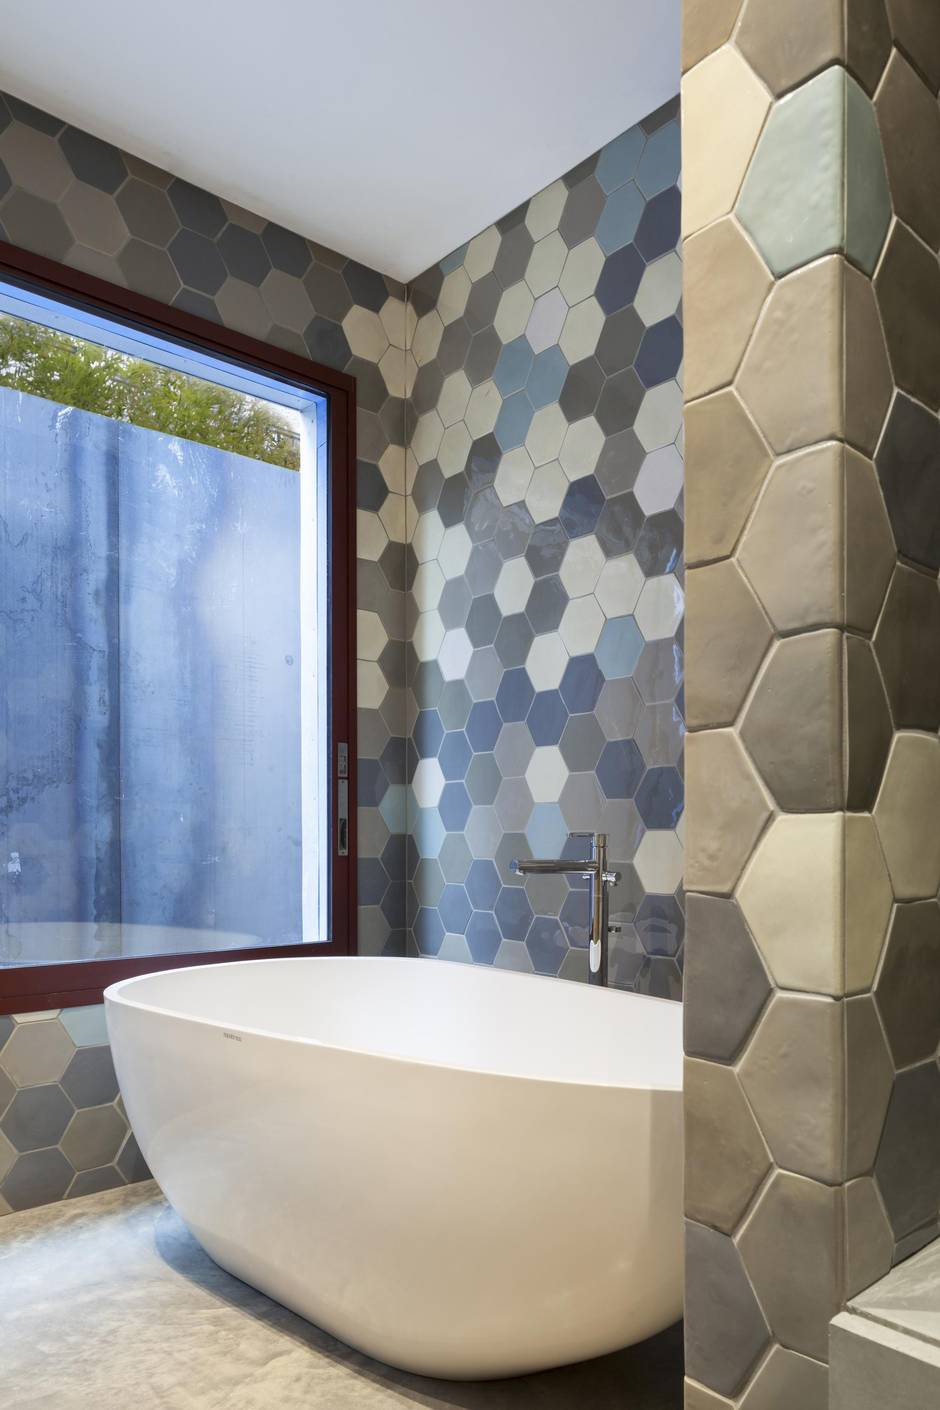 How tile can become the design star of a home the globe and mail how tile can become the design star of a home dailygadgetfo Choice Image